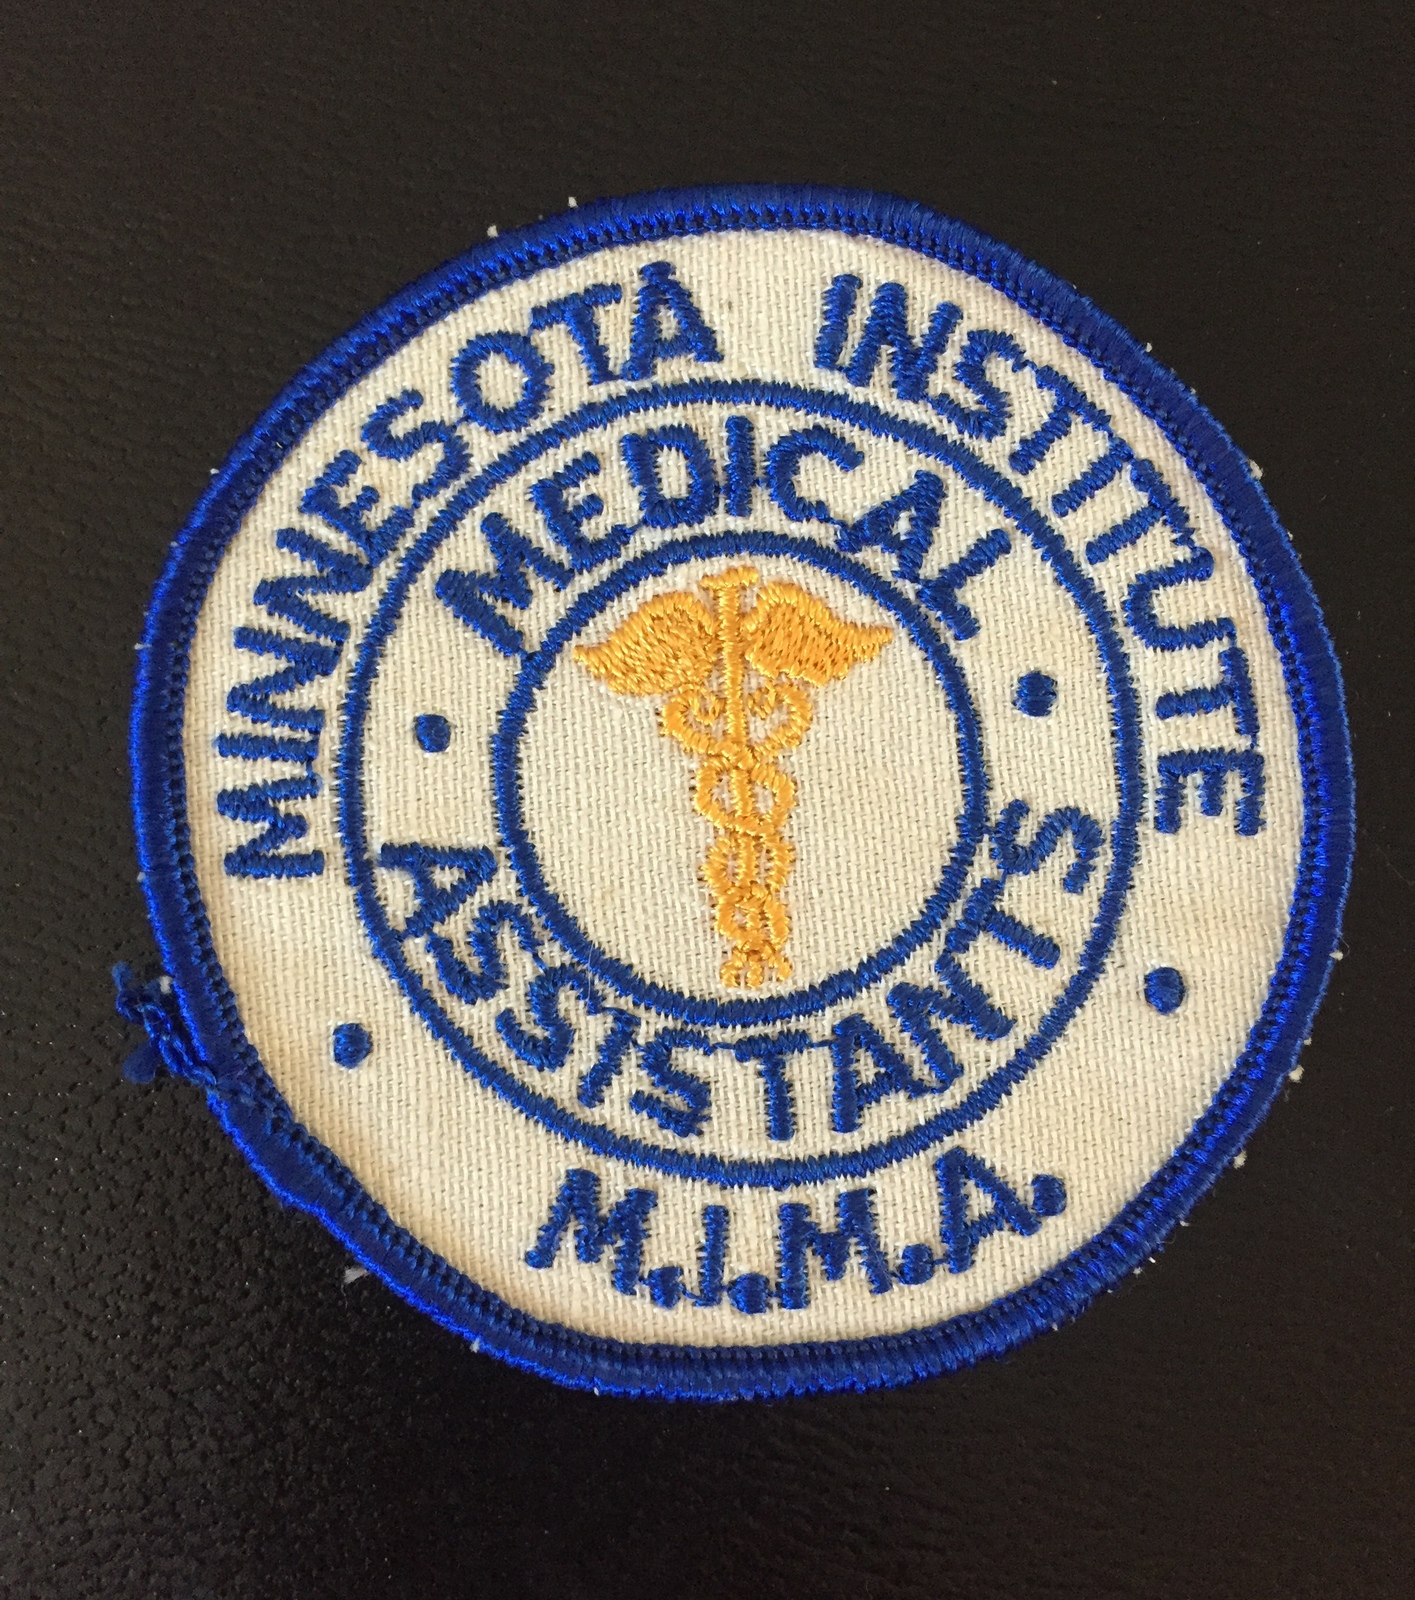 Vintage 70s Minnesota Institute of Medical Assistants (MIMA) patch